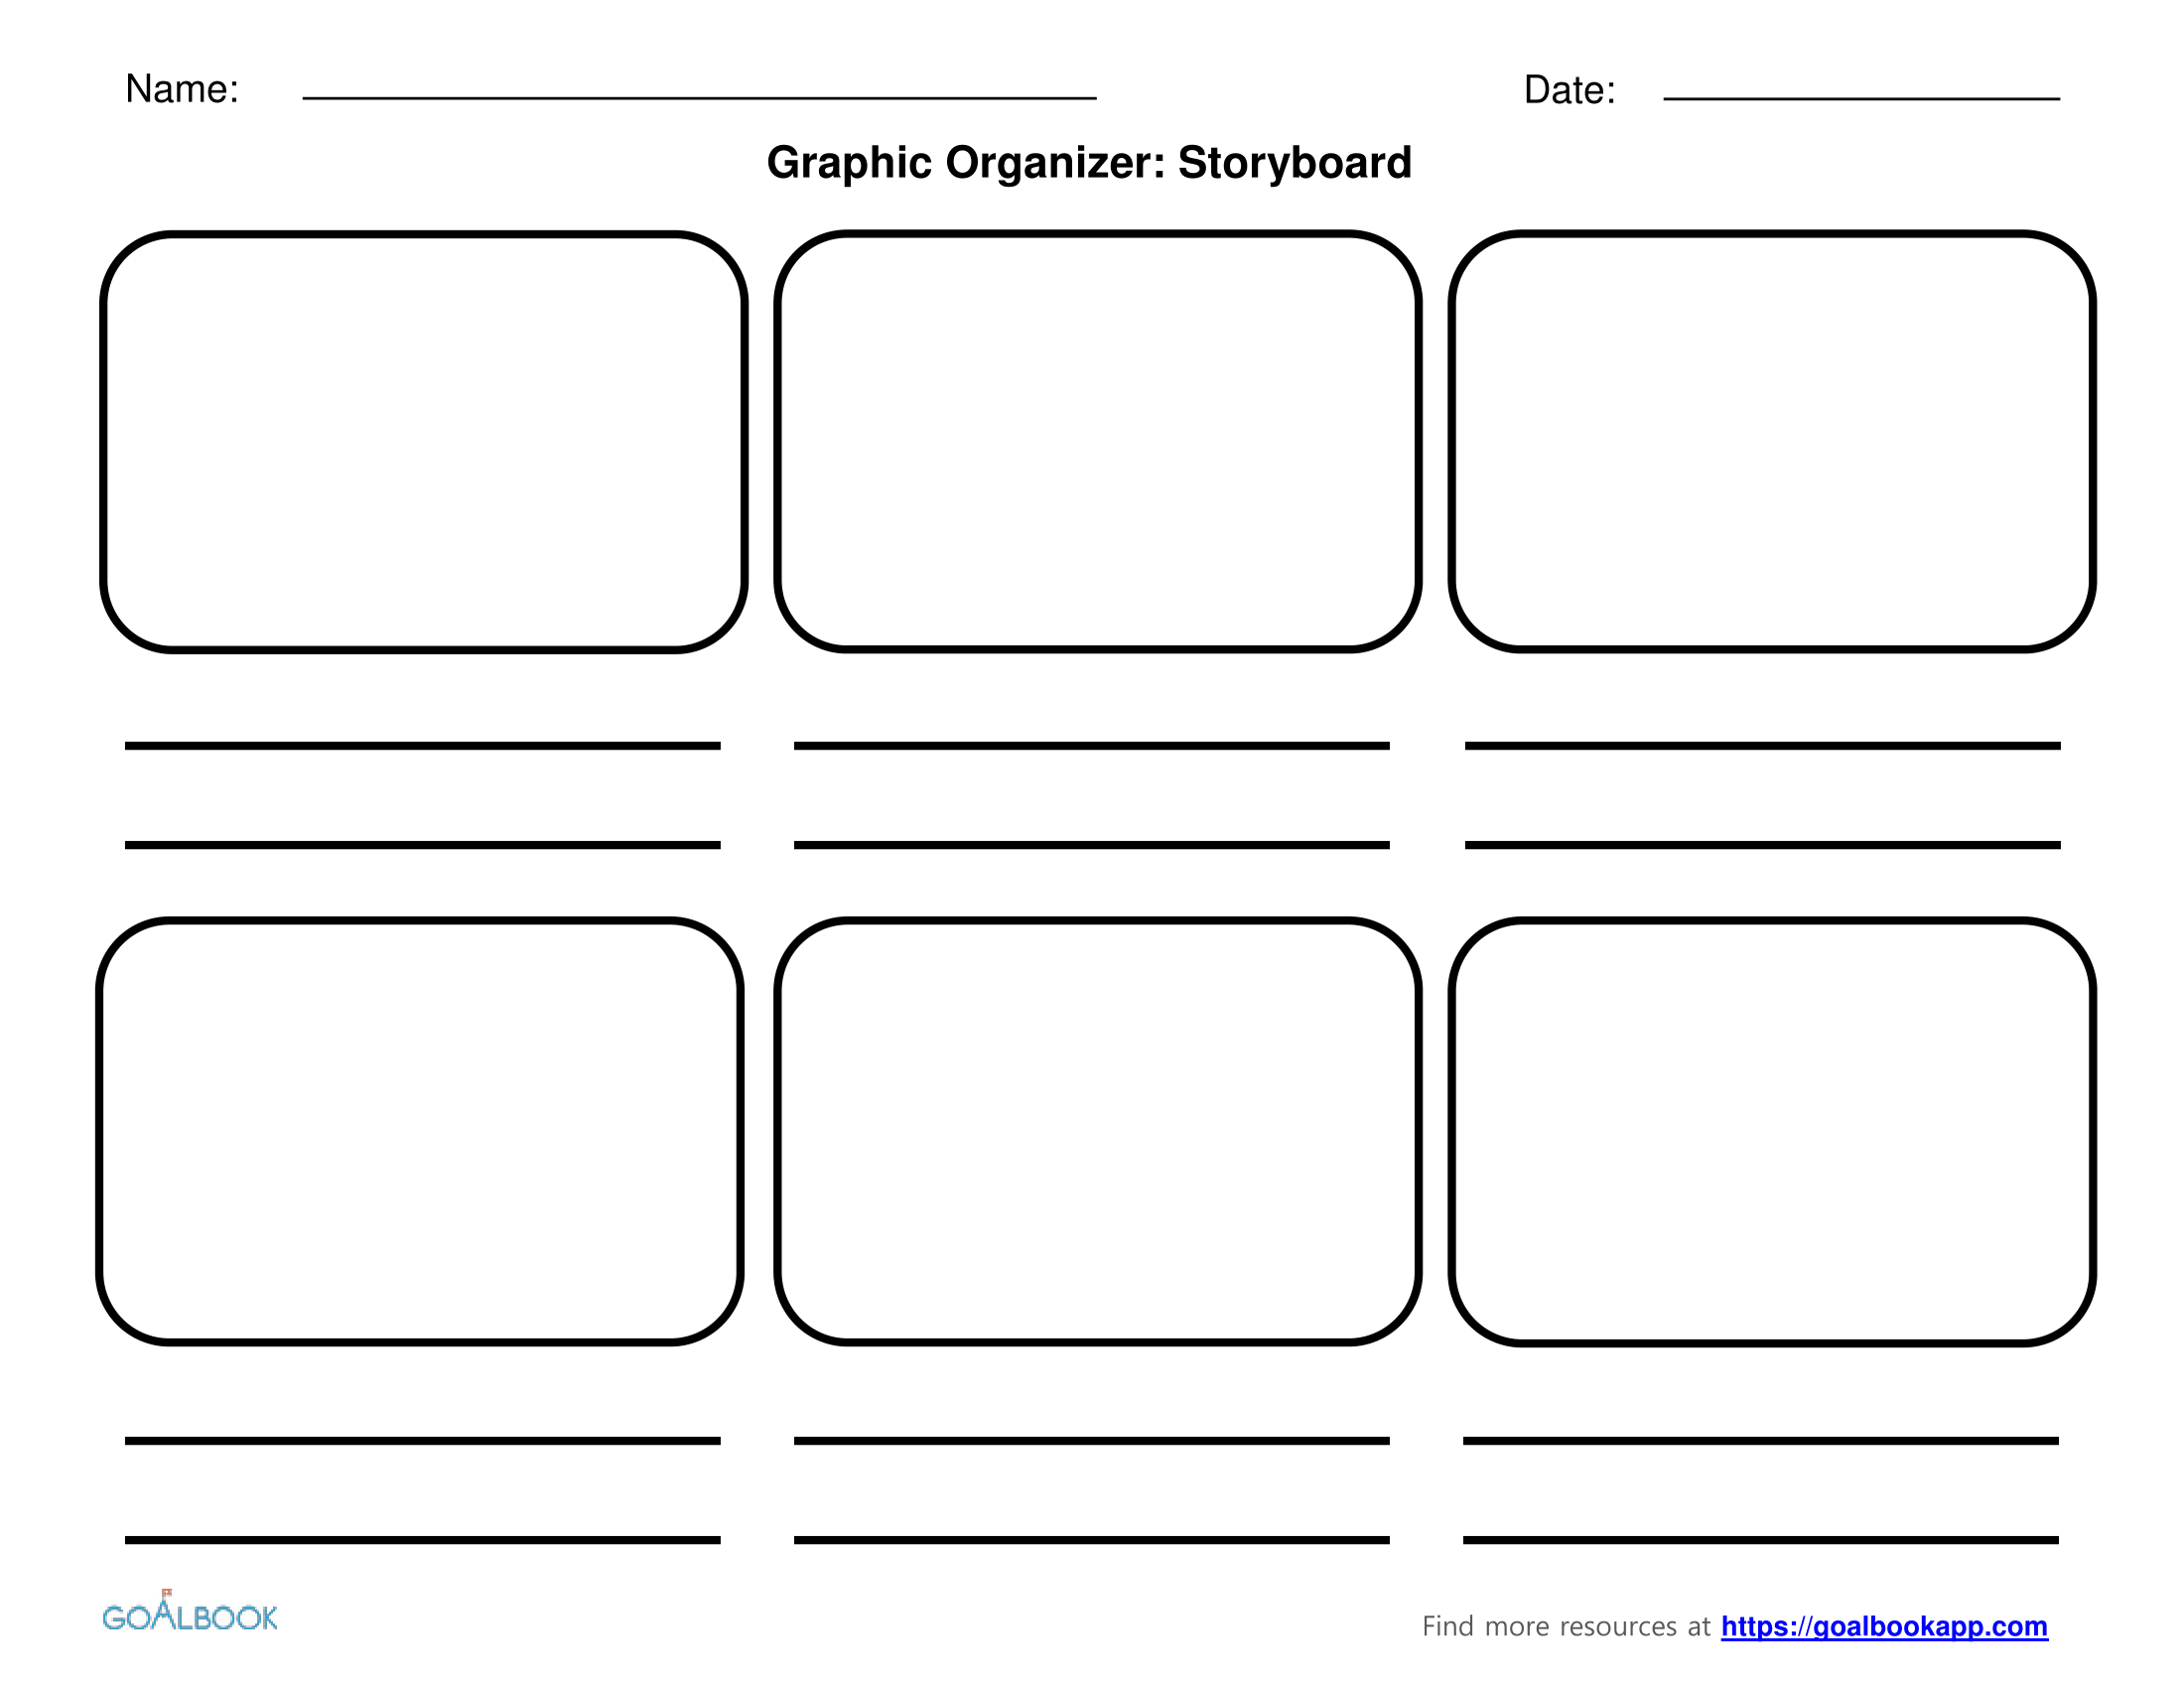 Storyboard: Graphic Organizer